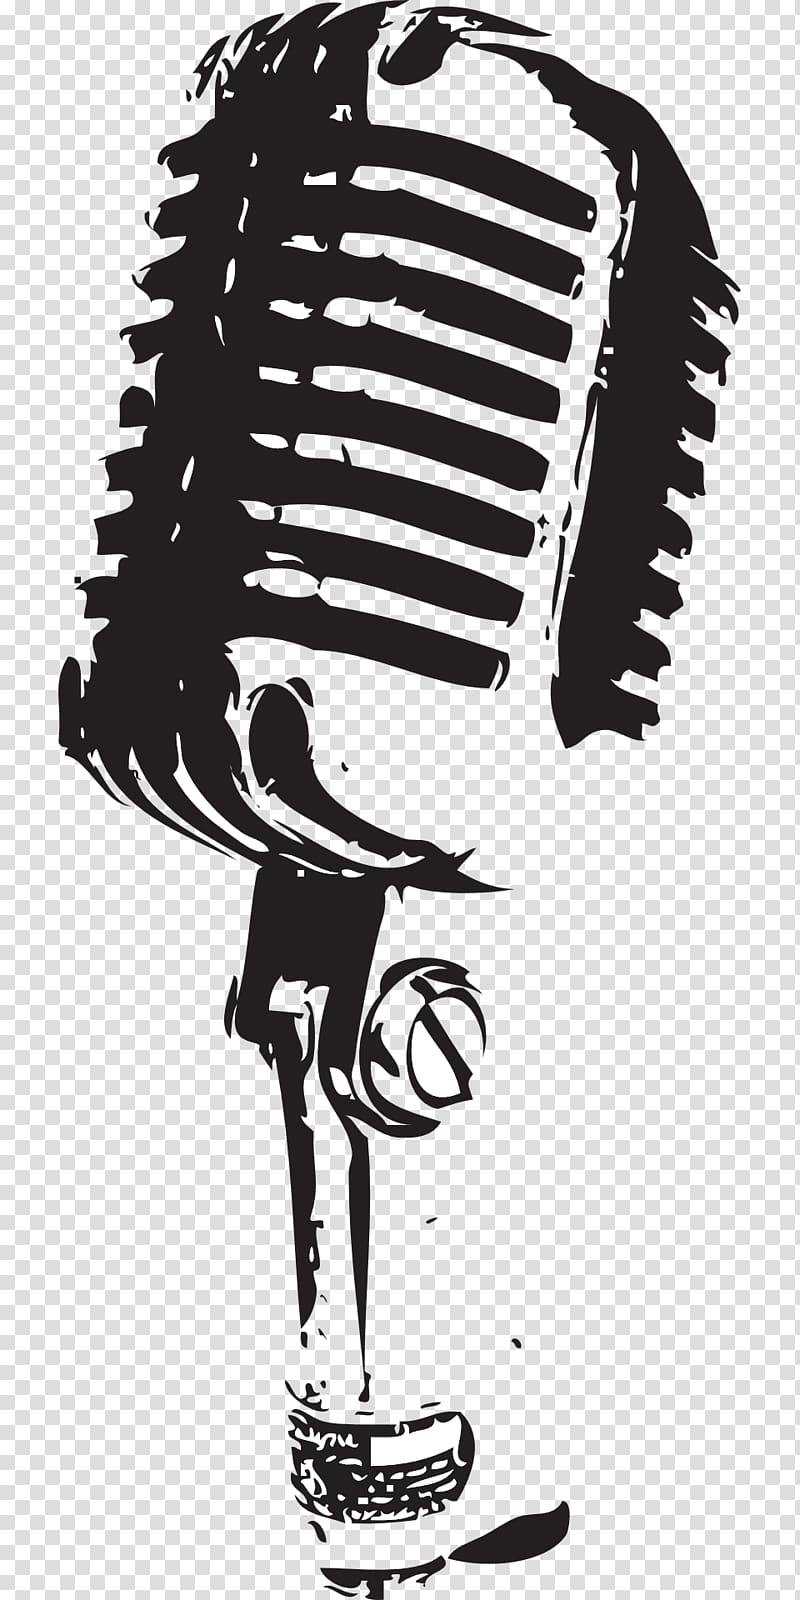 Singing mic clipart clipart free library Microphone graphics Drawing , microphone transparent ... clipart free library